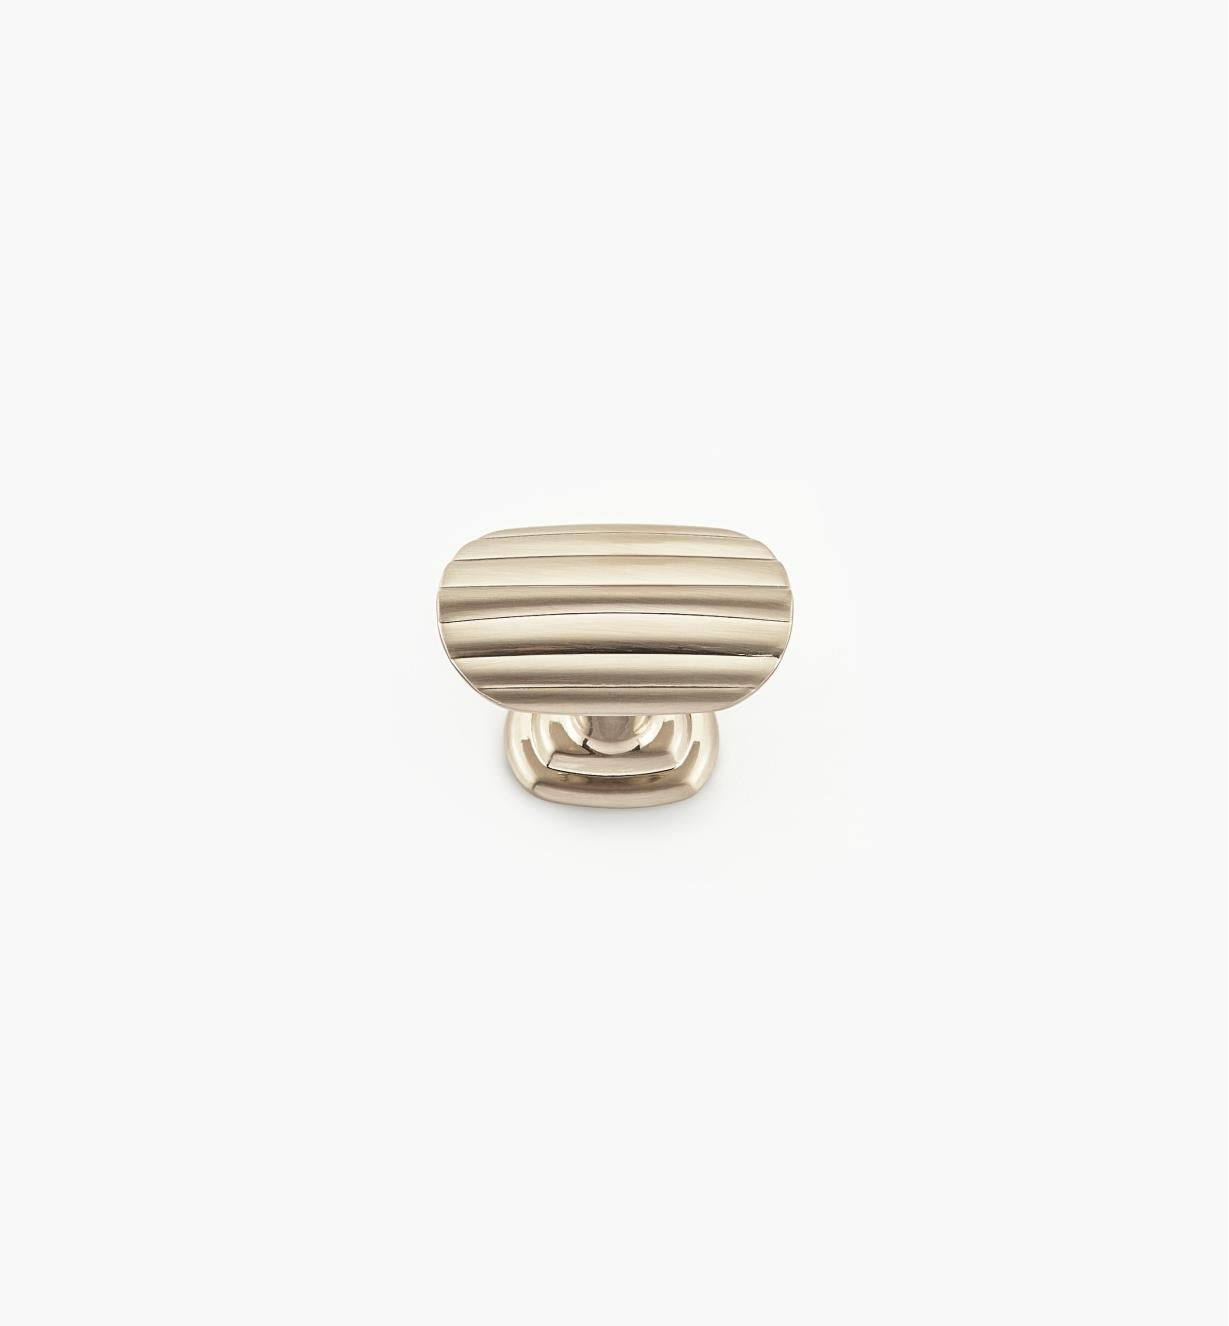 02W1740 - Tsou 38mm x 24mm Satin Nickel Knob